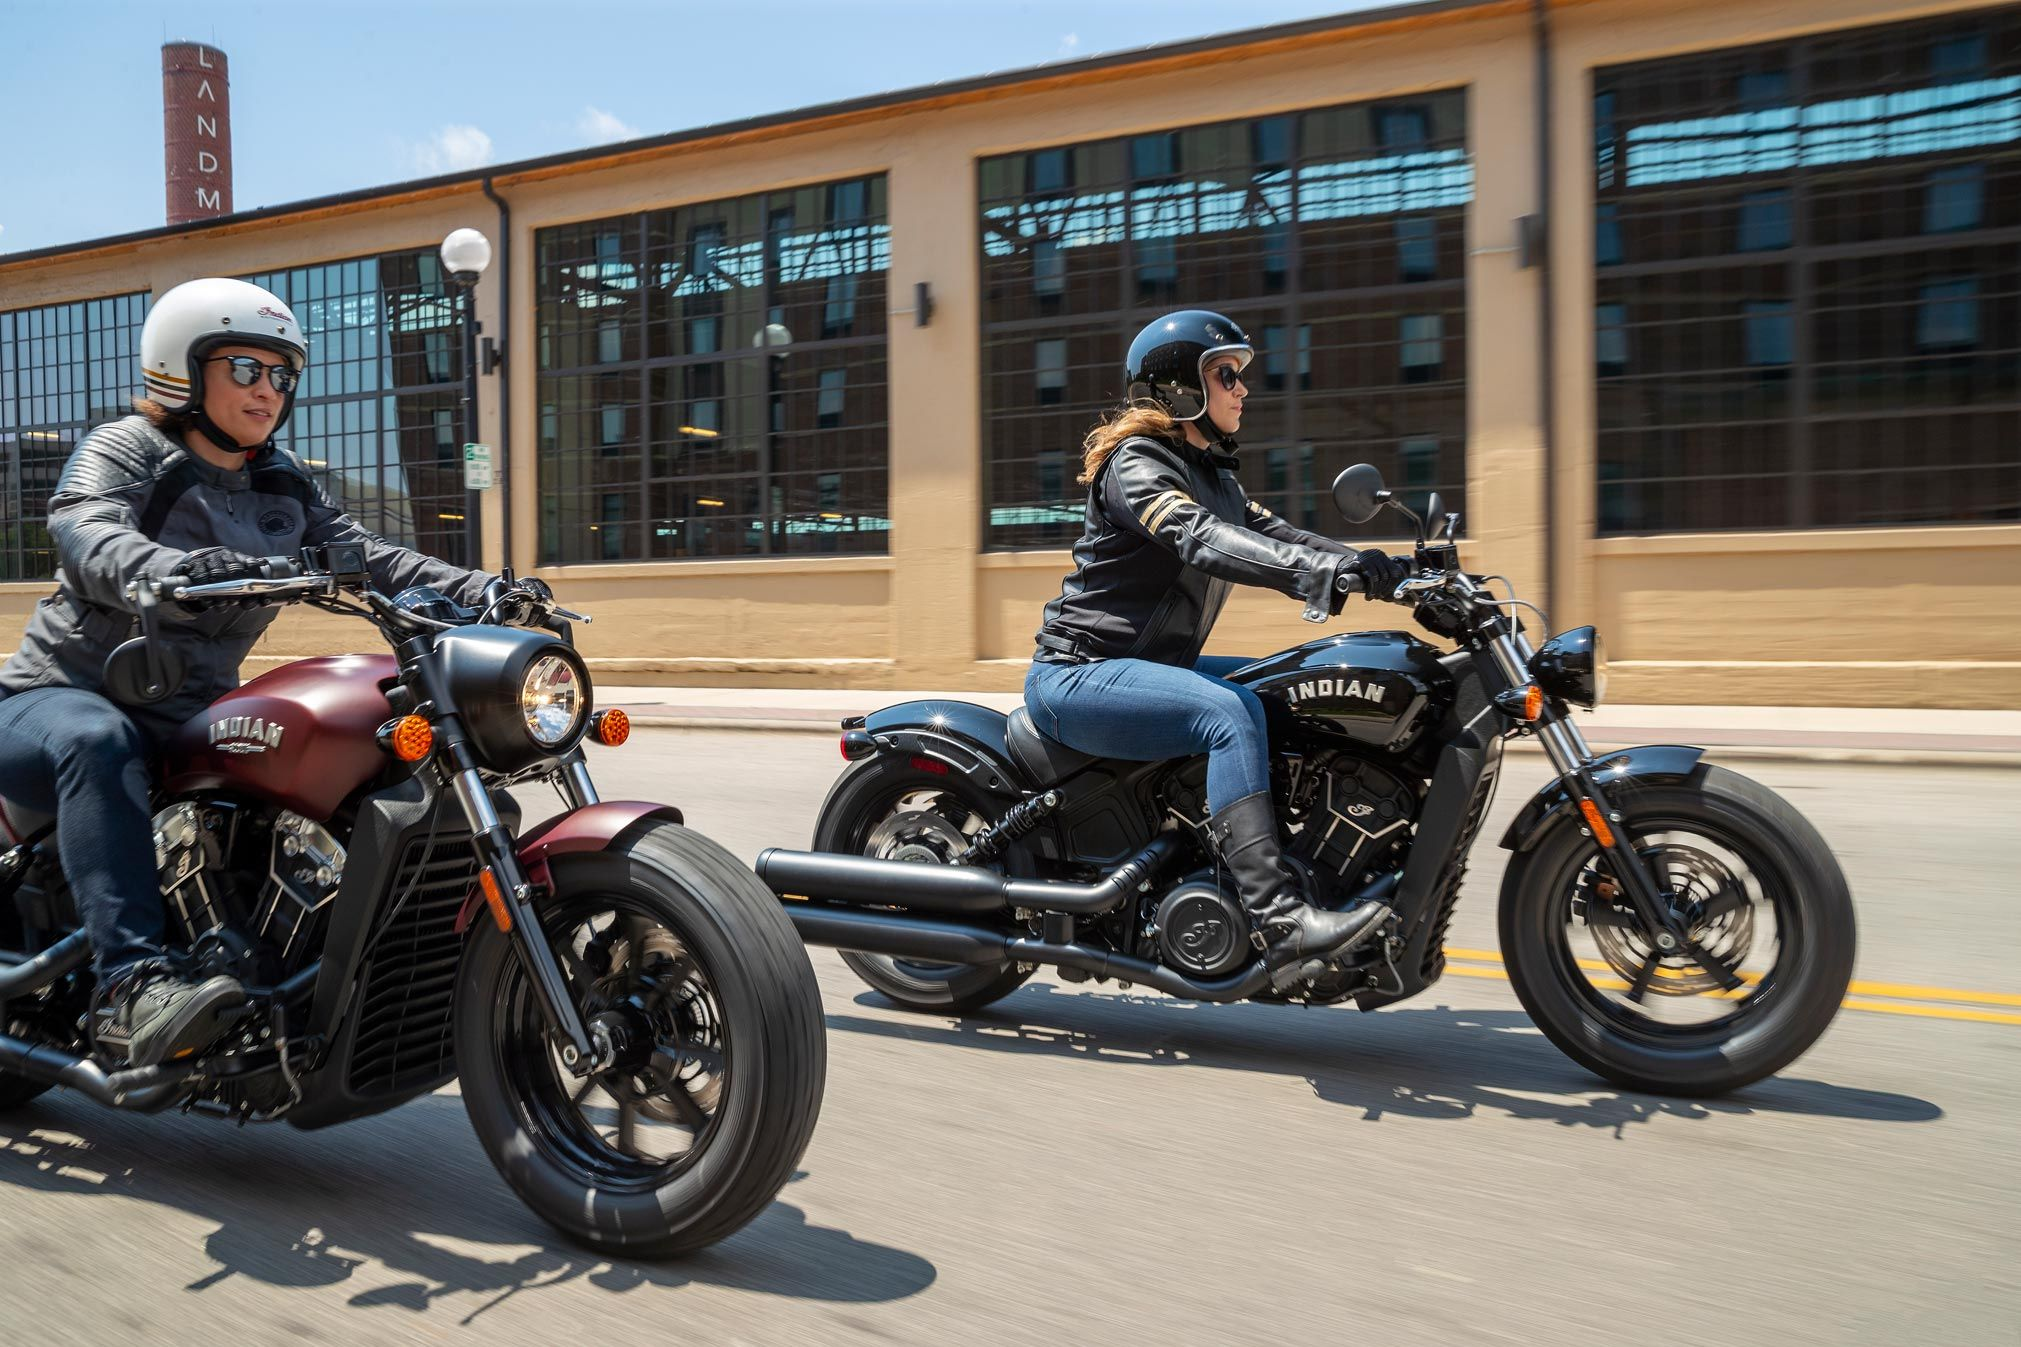 2021motorcyclemodels Motorcycle News 2021 Australia 2021 Indian Scout Bobber Sixty Guide 2021 Indian Scout Bobber Sixty No Mo Indian Scout Bobber Scout [ 1347 x 2021 Pixel ]